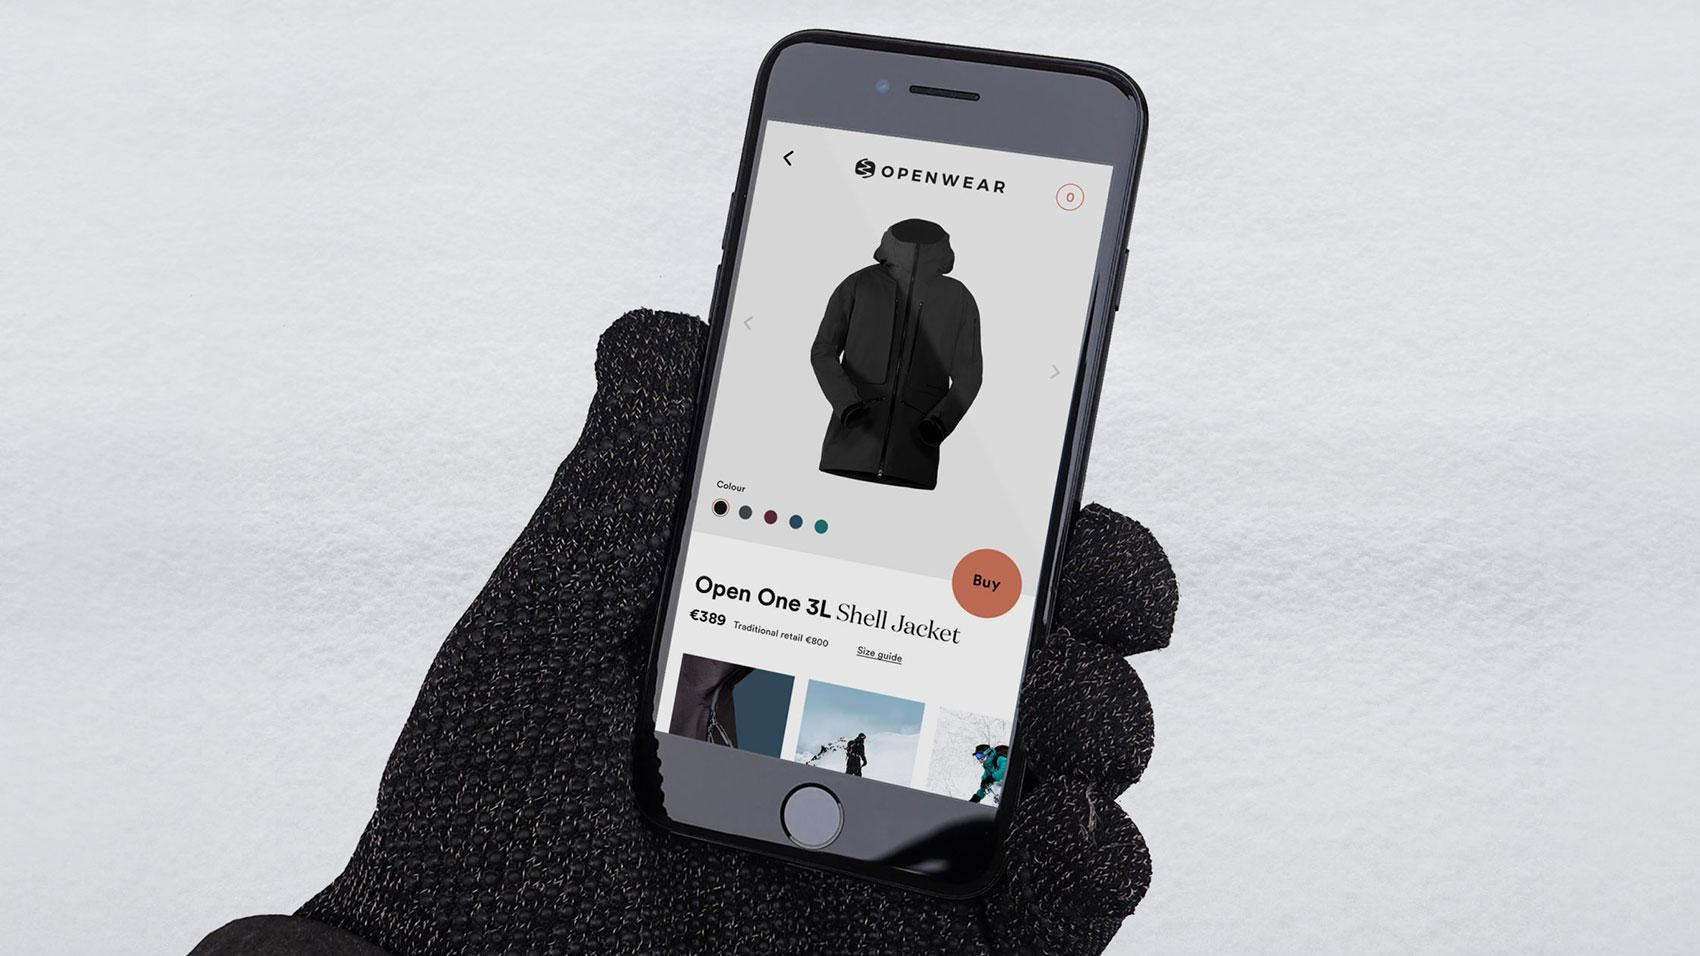 shoppable community for Open Wear: person on phone